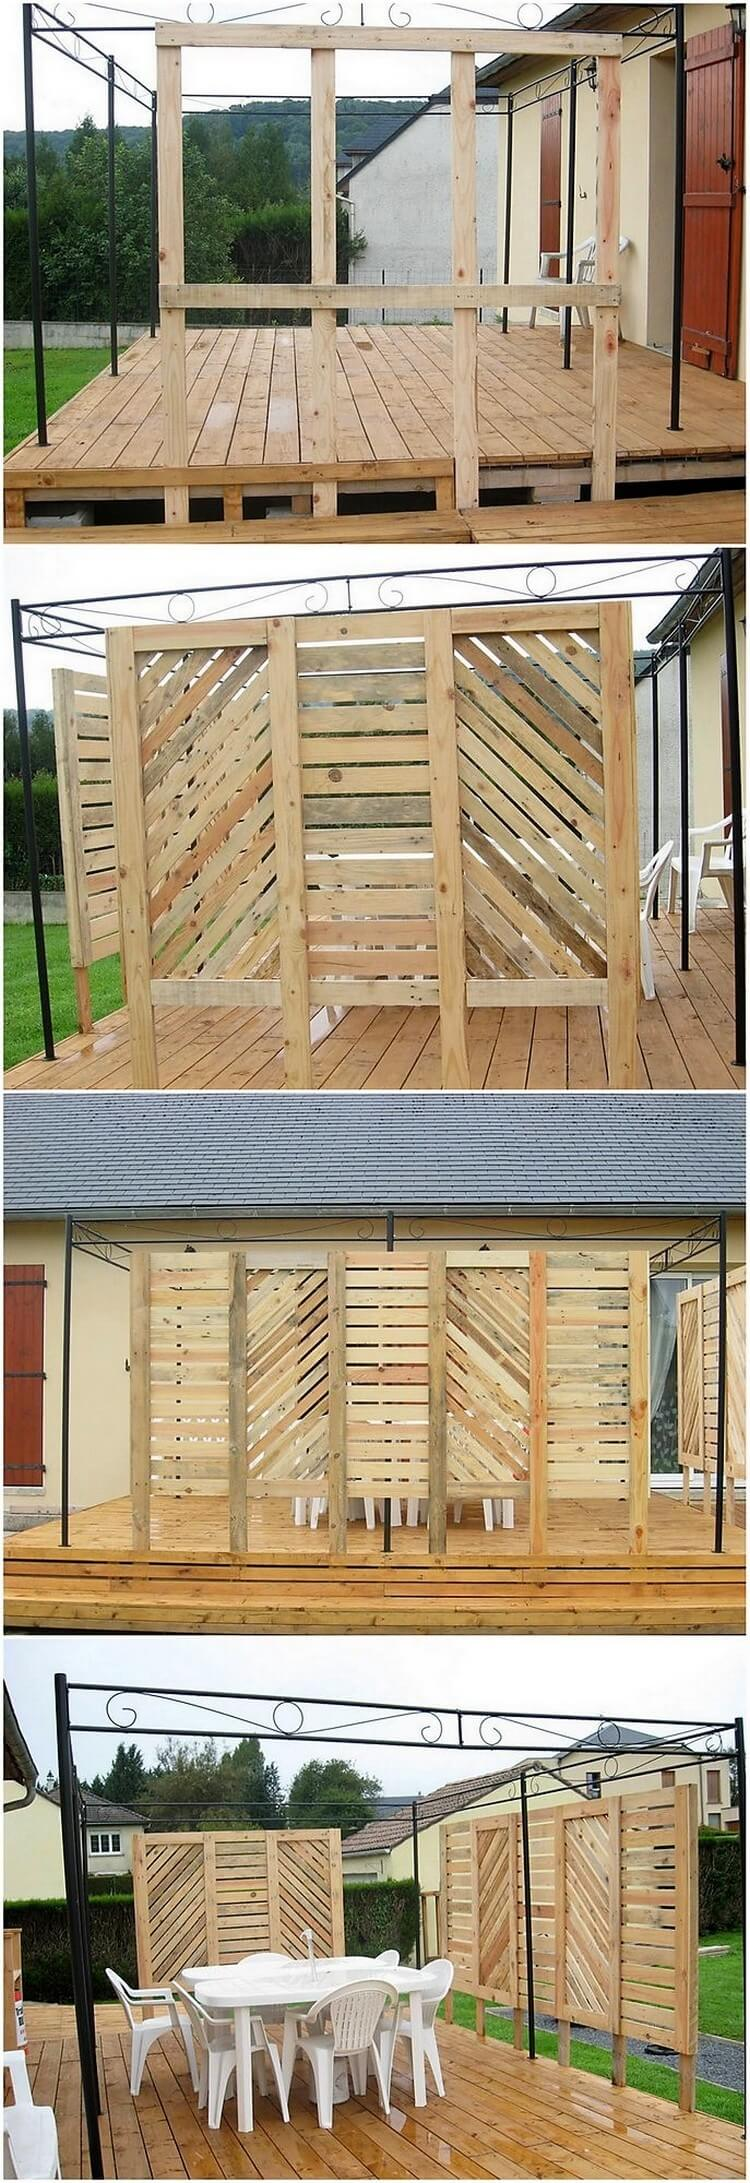 Awesome ideas for repurposing old shipping pallets for Terrace fence